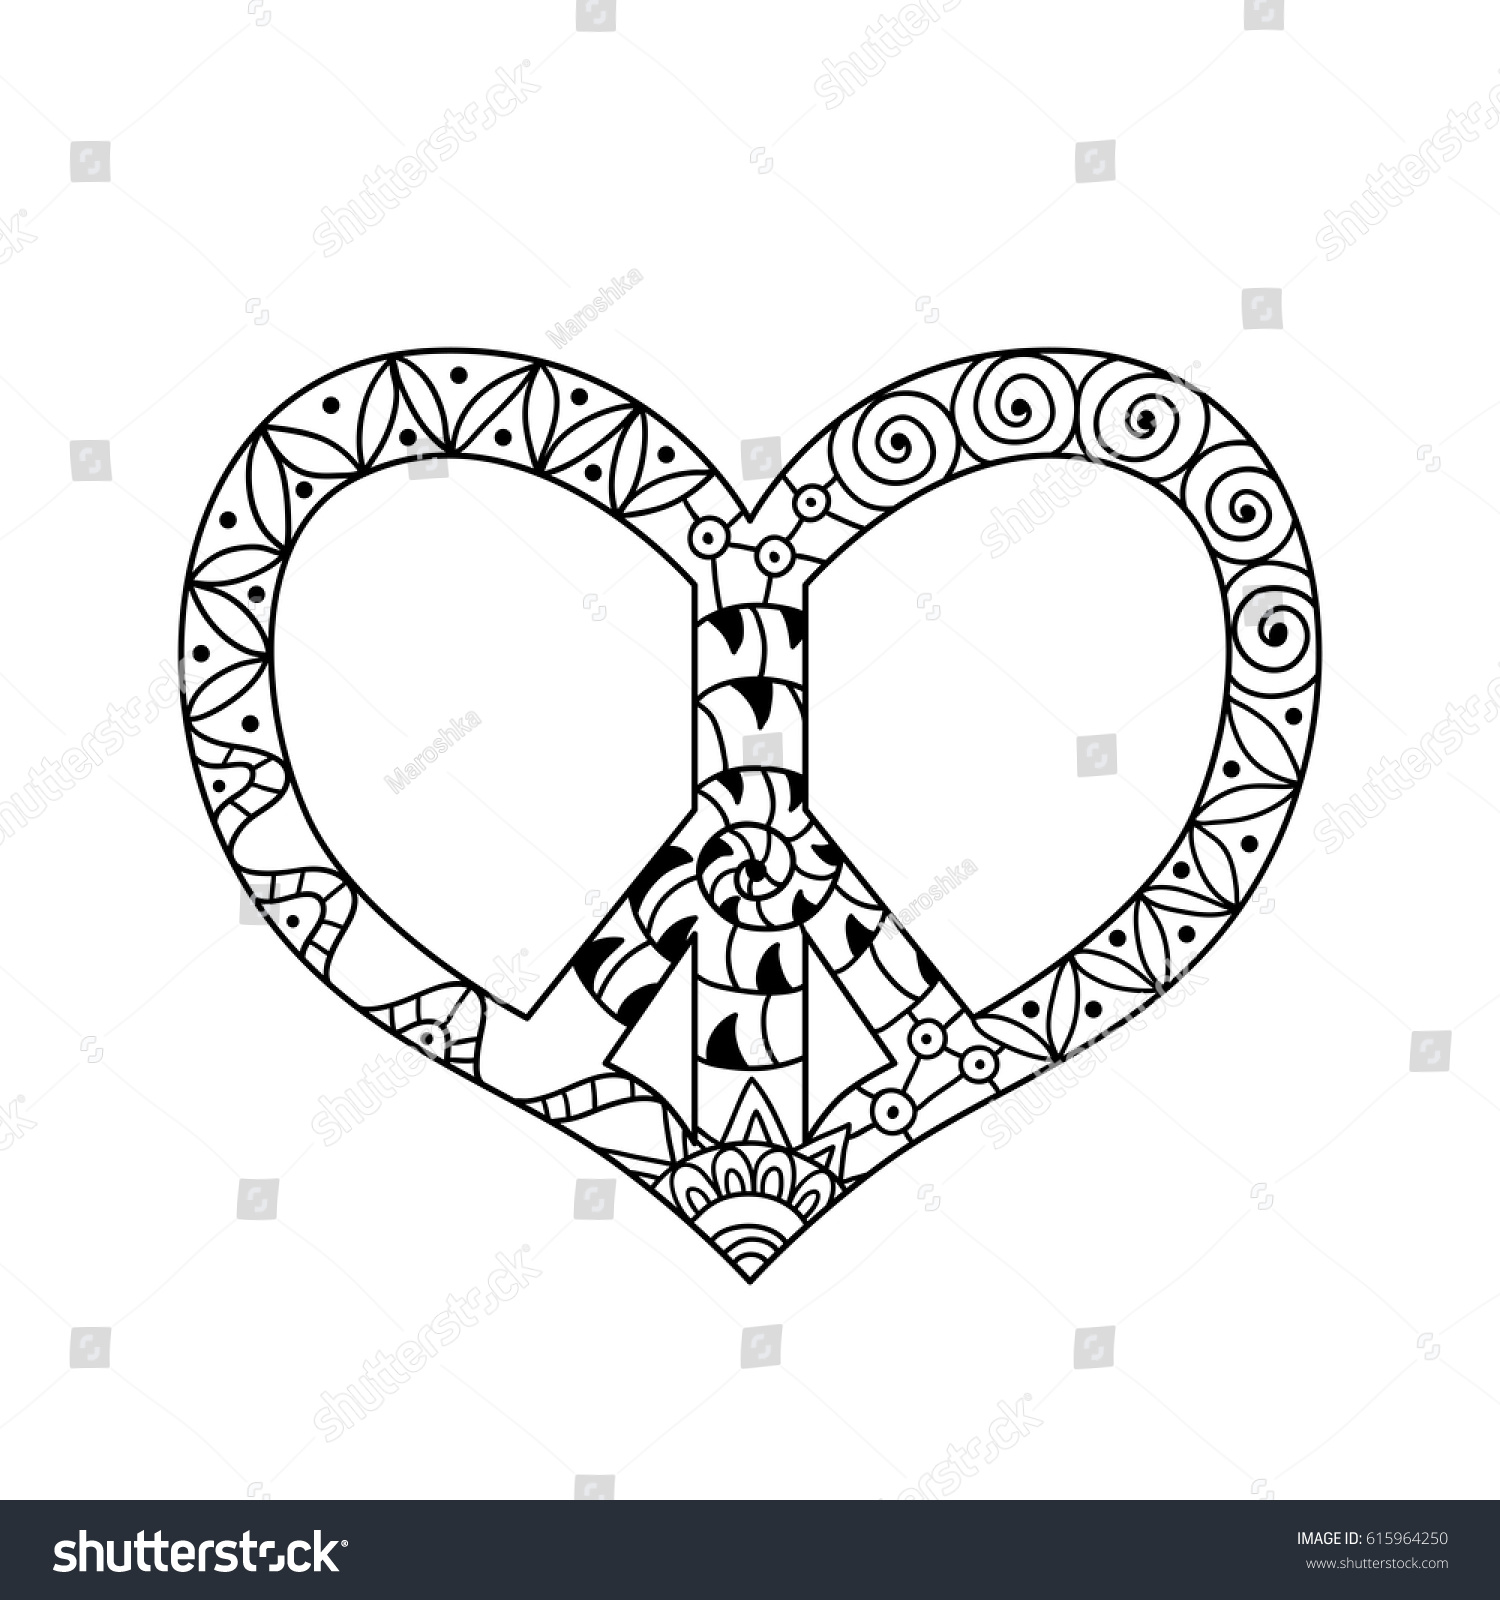 Hand Drawn Hippie Peace Symbol Heart Stock Vector HD (Royalty Free ...